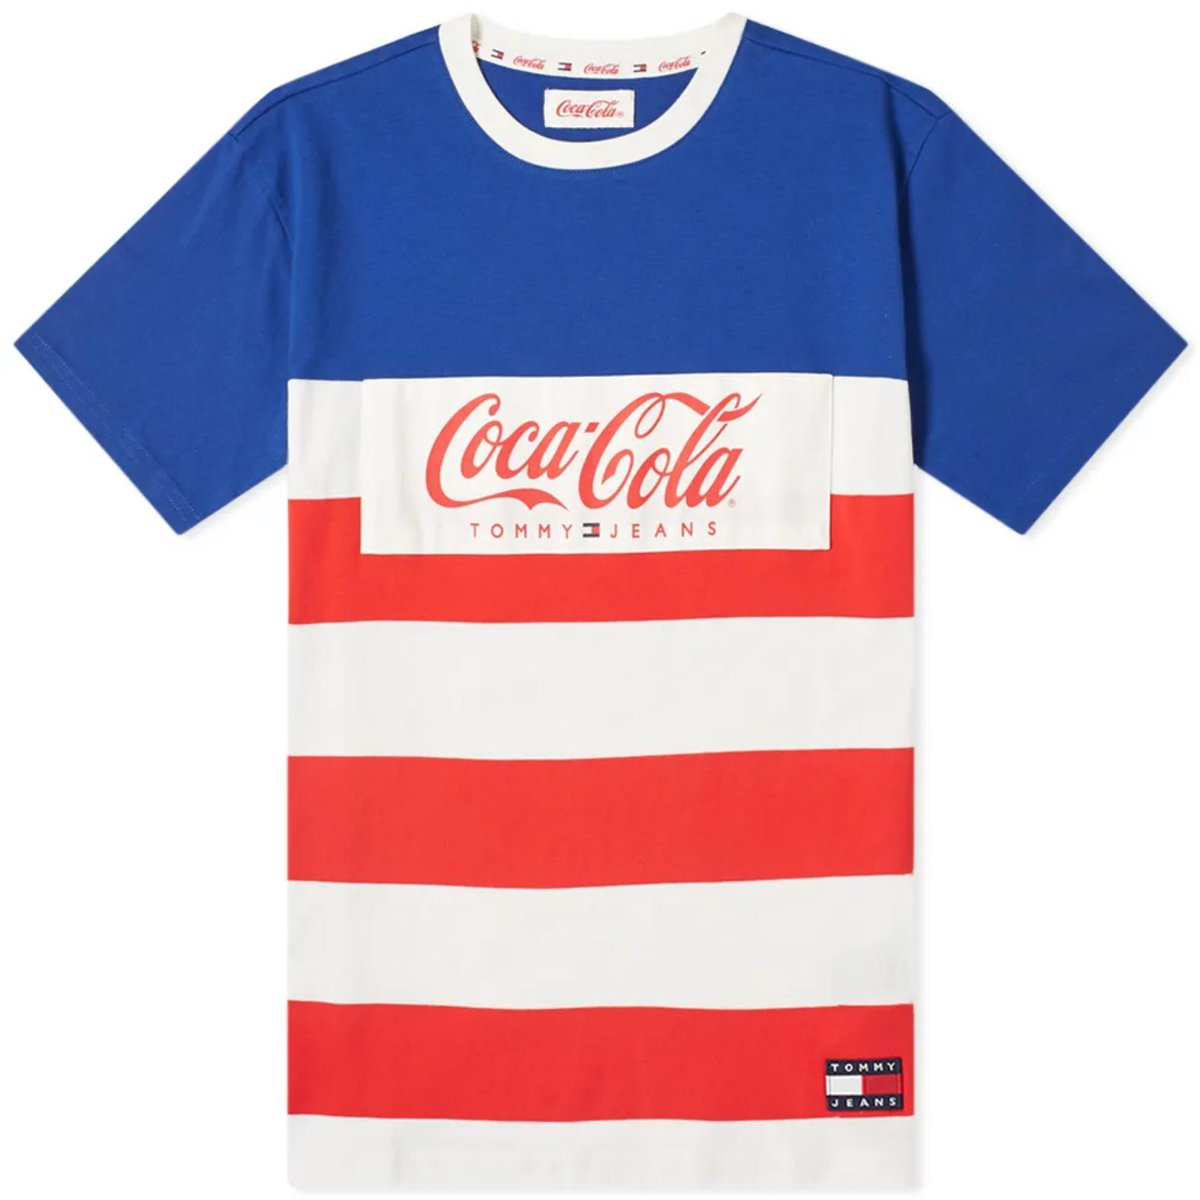 e59d93e1128564 ad  Coca-Cola x Tommy Jeans Tees Now Live At END Clothing     http   bit.ly 2UoYqNf pic.twitter.com WBfl2sGSi3